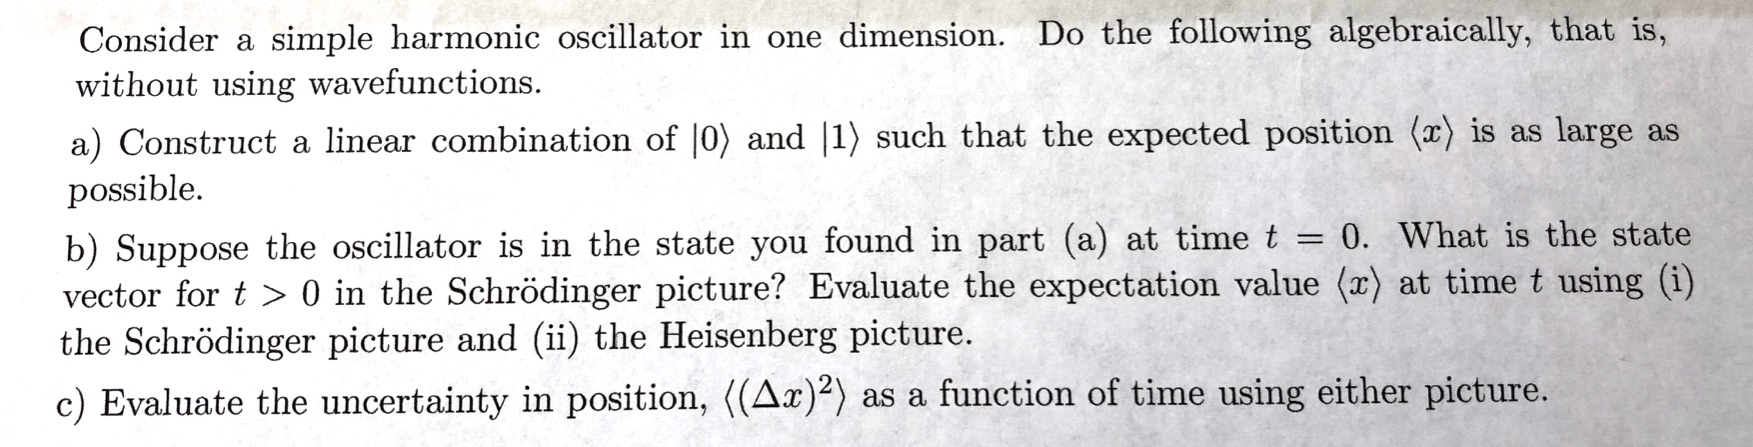 Consider a simple harmonic oscillator in one dimension. Do the following algebraically, that is, without using wavefunctions. a) Construct a linear combination of |0) and |1) such that the expected position (x) is as large as possible b) Suppose the oscillator is in the state you found in part (a) at time t - vector for t> 0 in the Schrödinger picture? Evaluate the expectation value (x) at time t using (i) the Schrödinger picture and (ii) the Heisenberg picture. 0. What is the state c) Evaluate the uncertainty in position, ((Ax)) as a function of time using either picture.